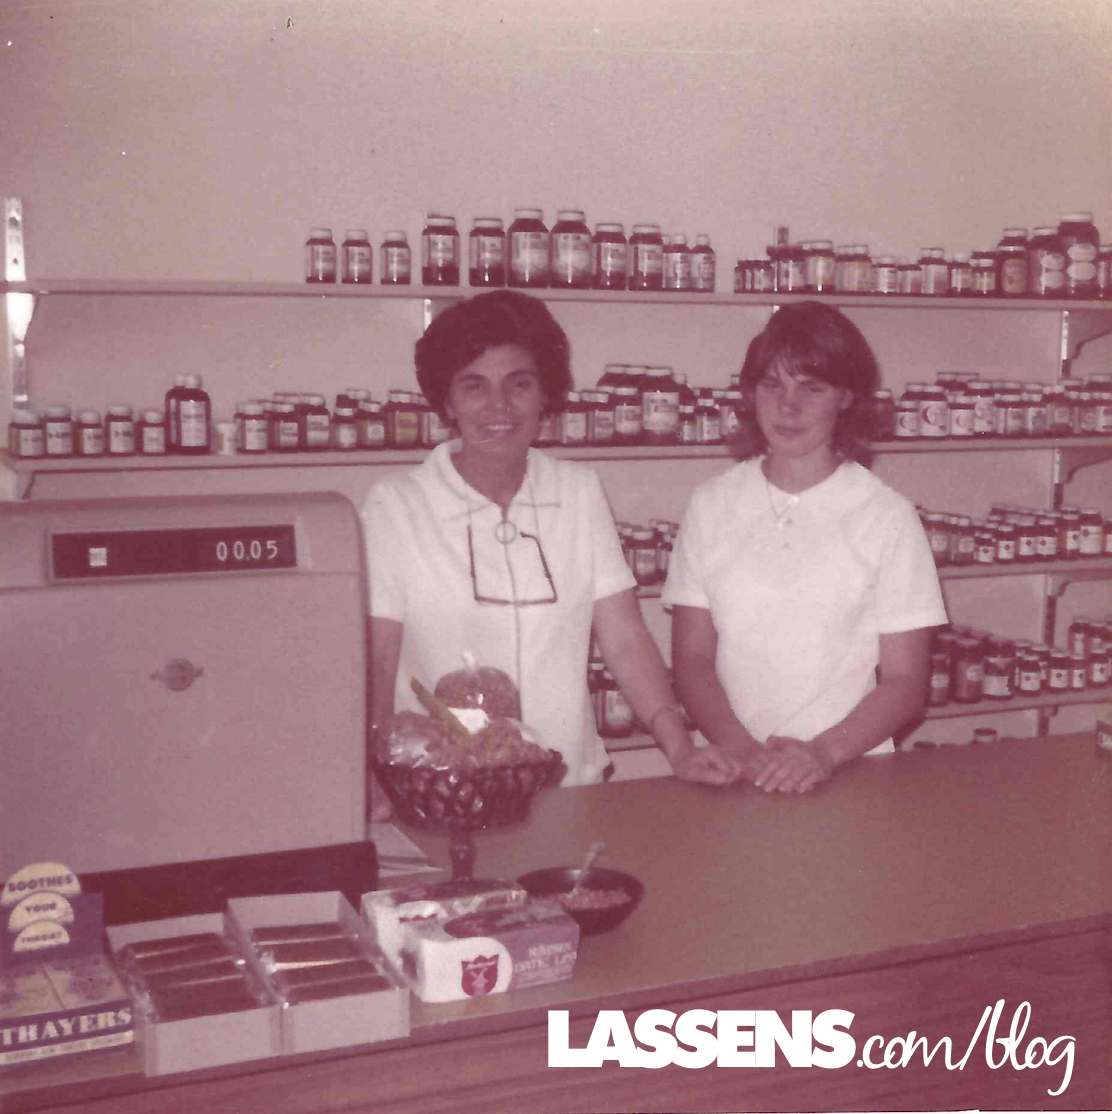 Origin+story, Lassen's+history, lassens+history, Oda+Lassen, Hilmar+Lassen, Lassens+grand+opening, the+best+of+everything+good, we+care+about+your+health